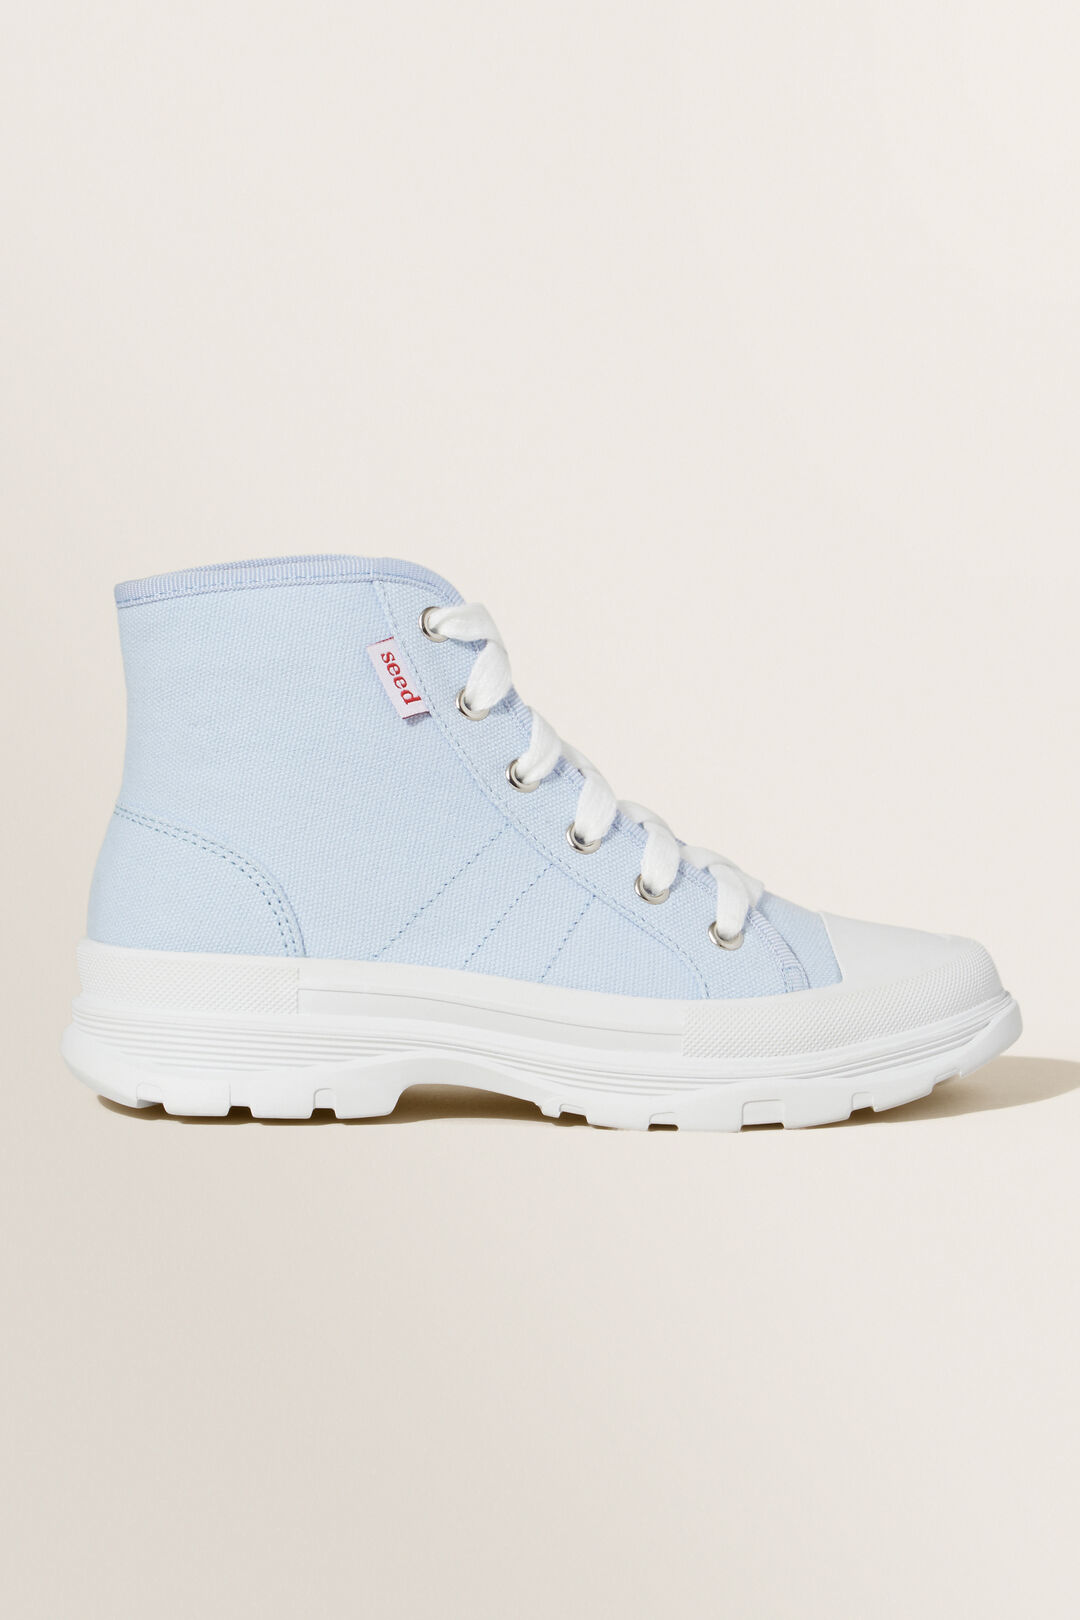 Chunky Sole Canvas High-Top  BABY BLUE  hi-res